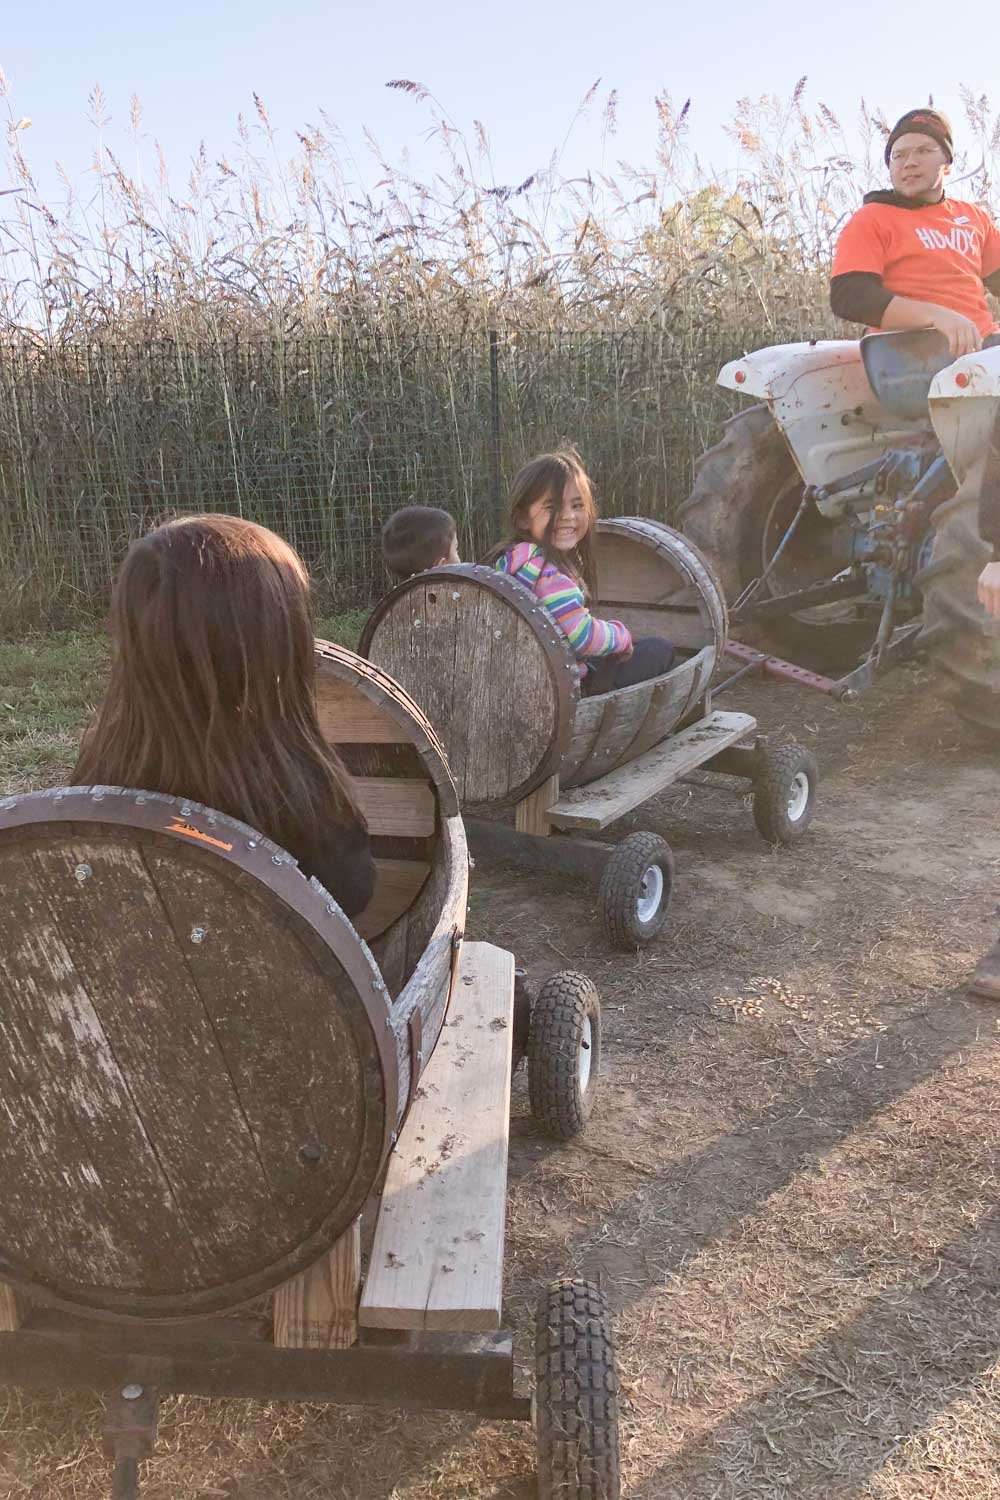 faulkner's pumpkin ranch - barrel ride